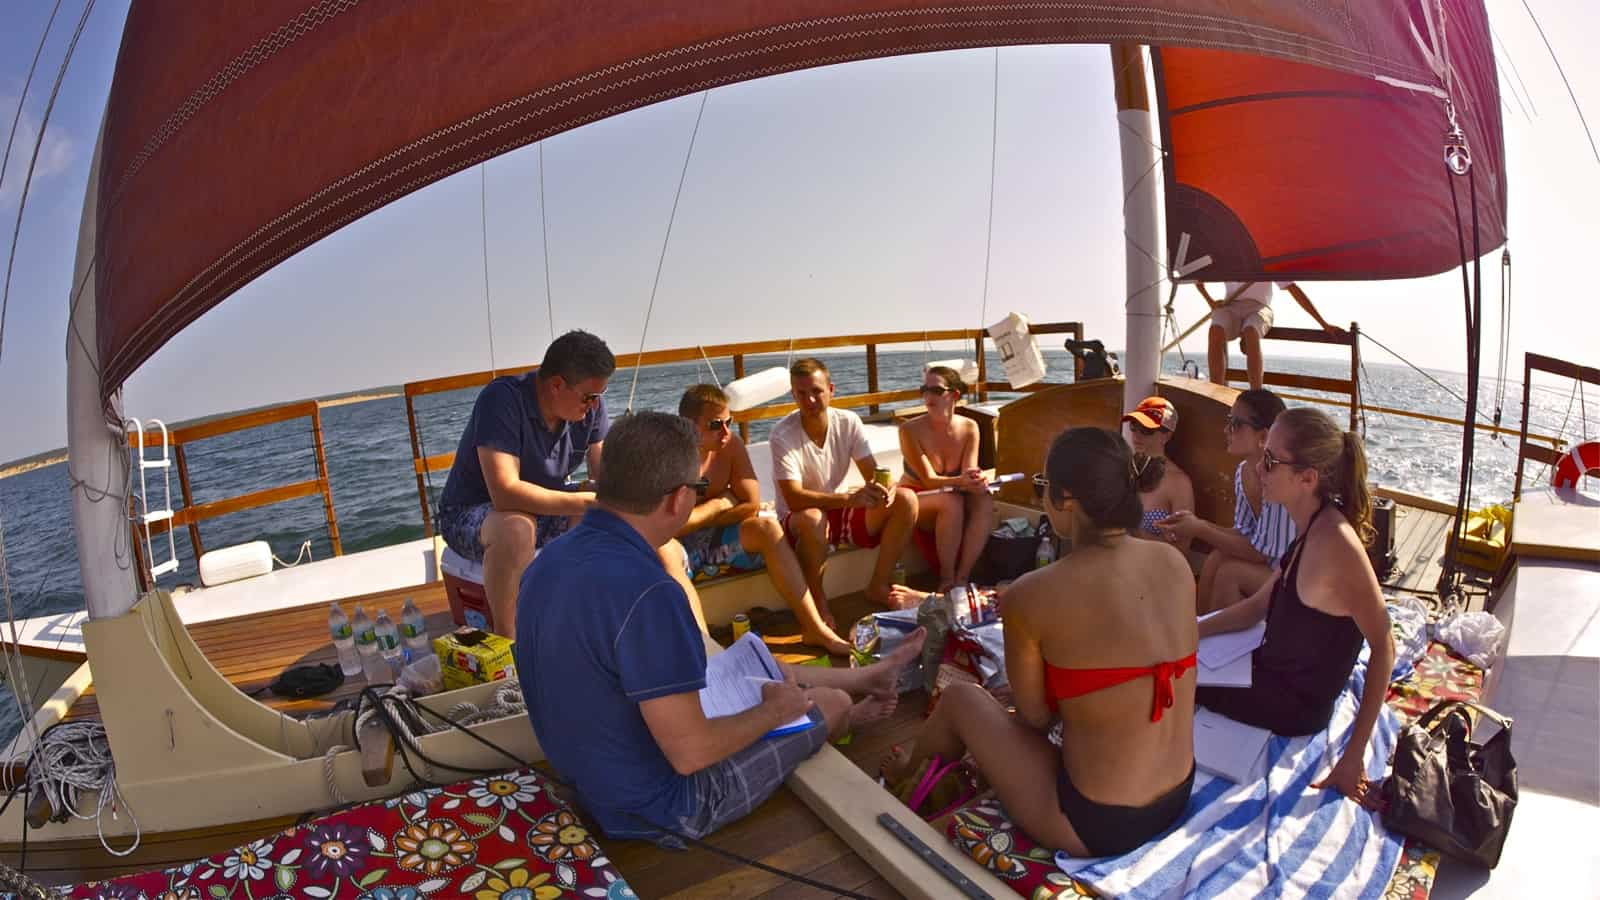 Corporate off-site meeting takes place under full sail on the charter catamaran Mon Tiki, photo by Sailing Montauk